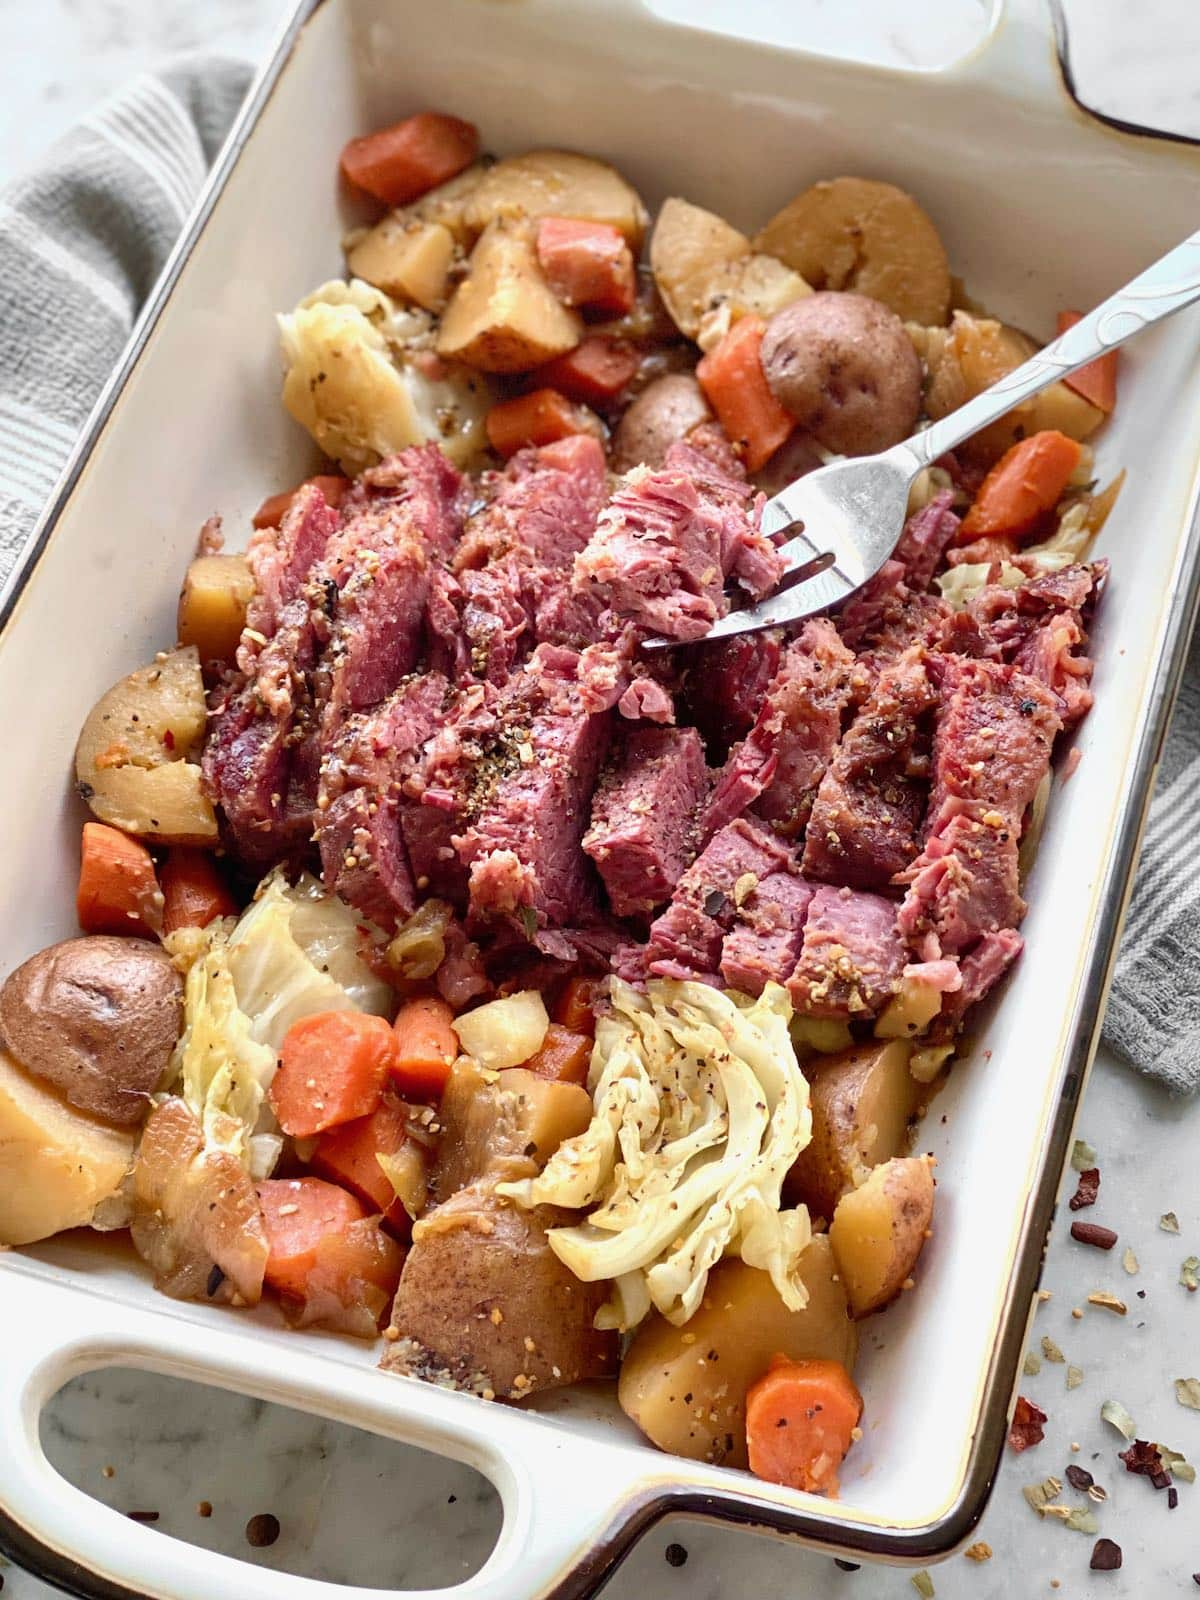 point cut corned beef brisket with cabbage, potatoes and carrots in a baking dish.